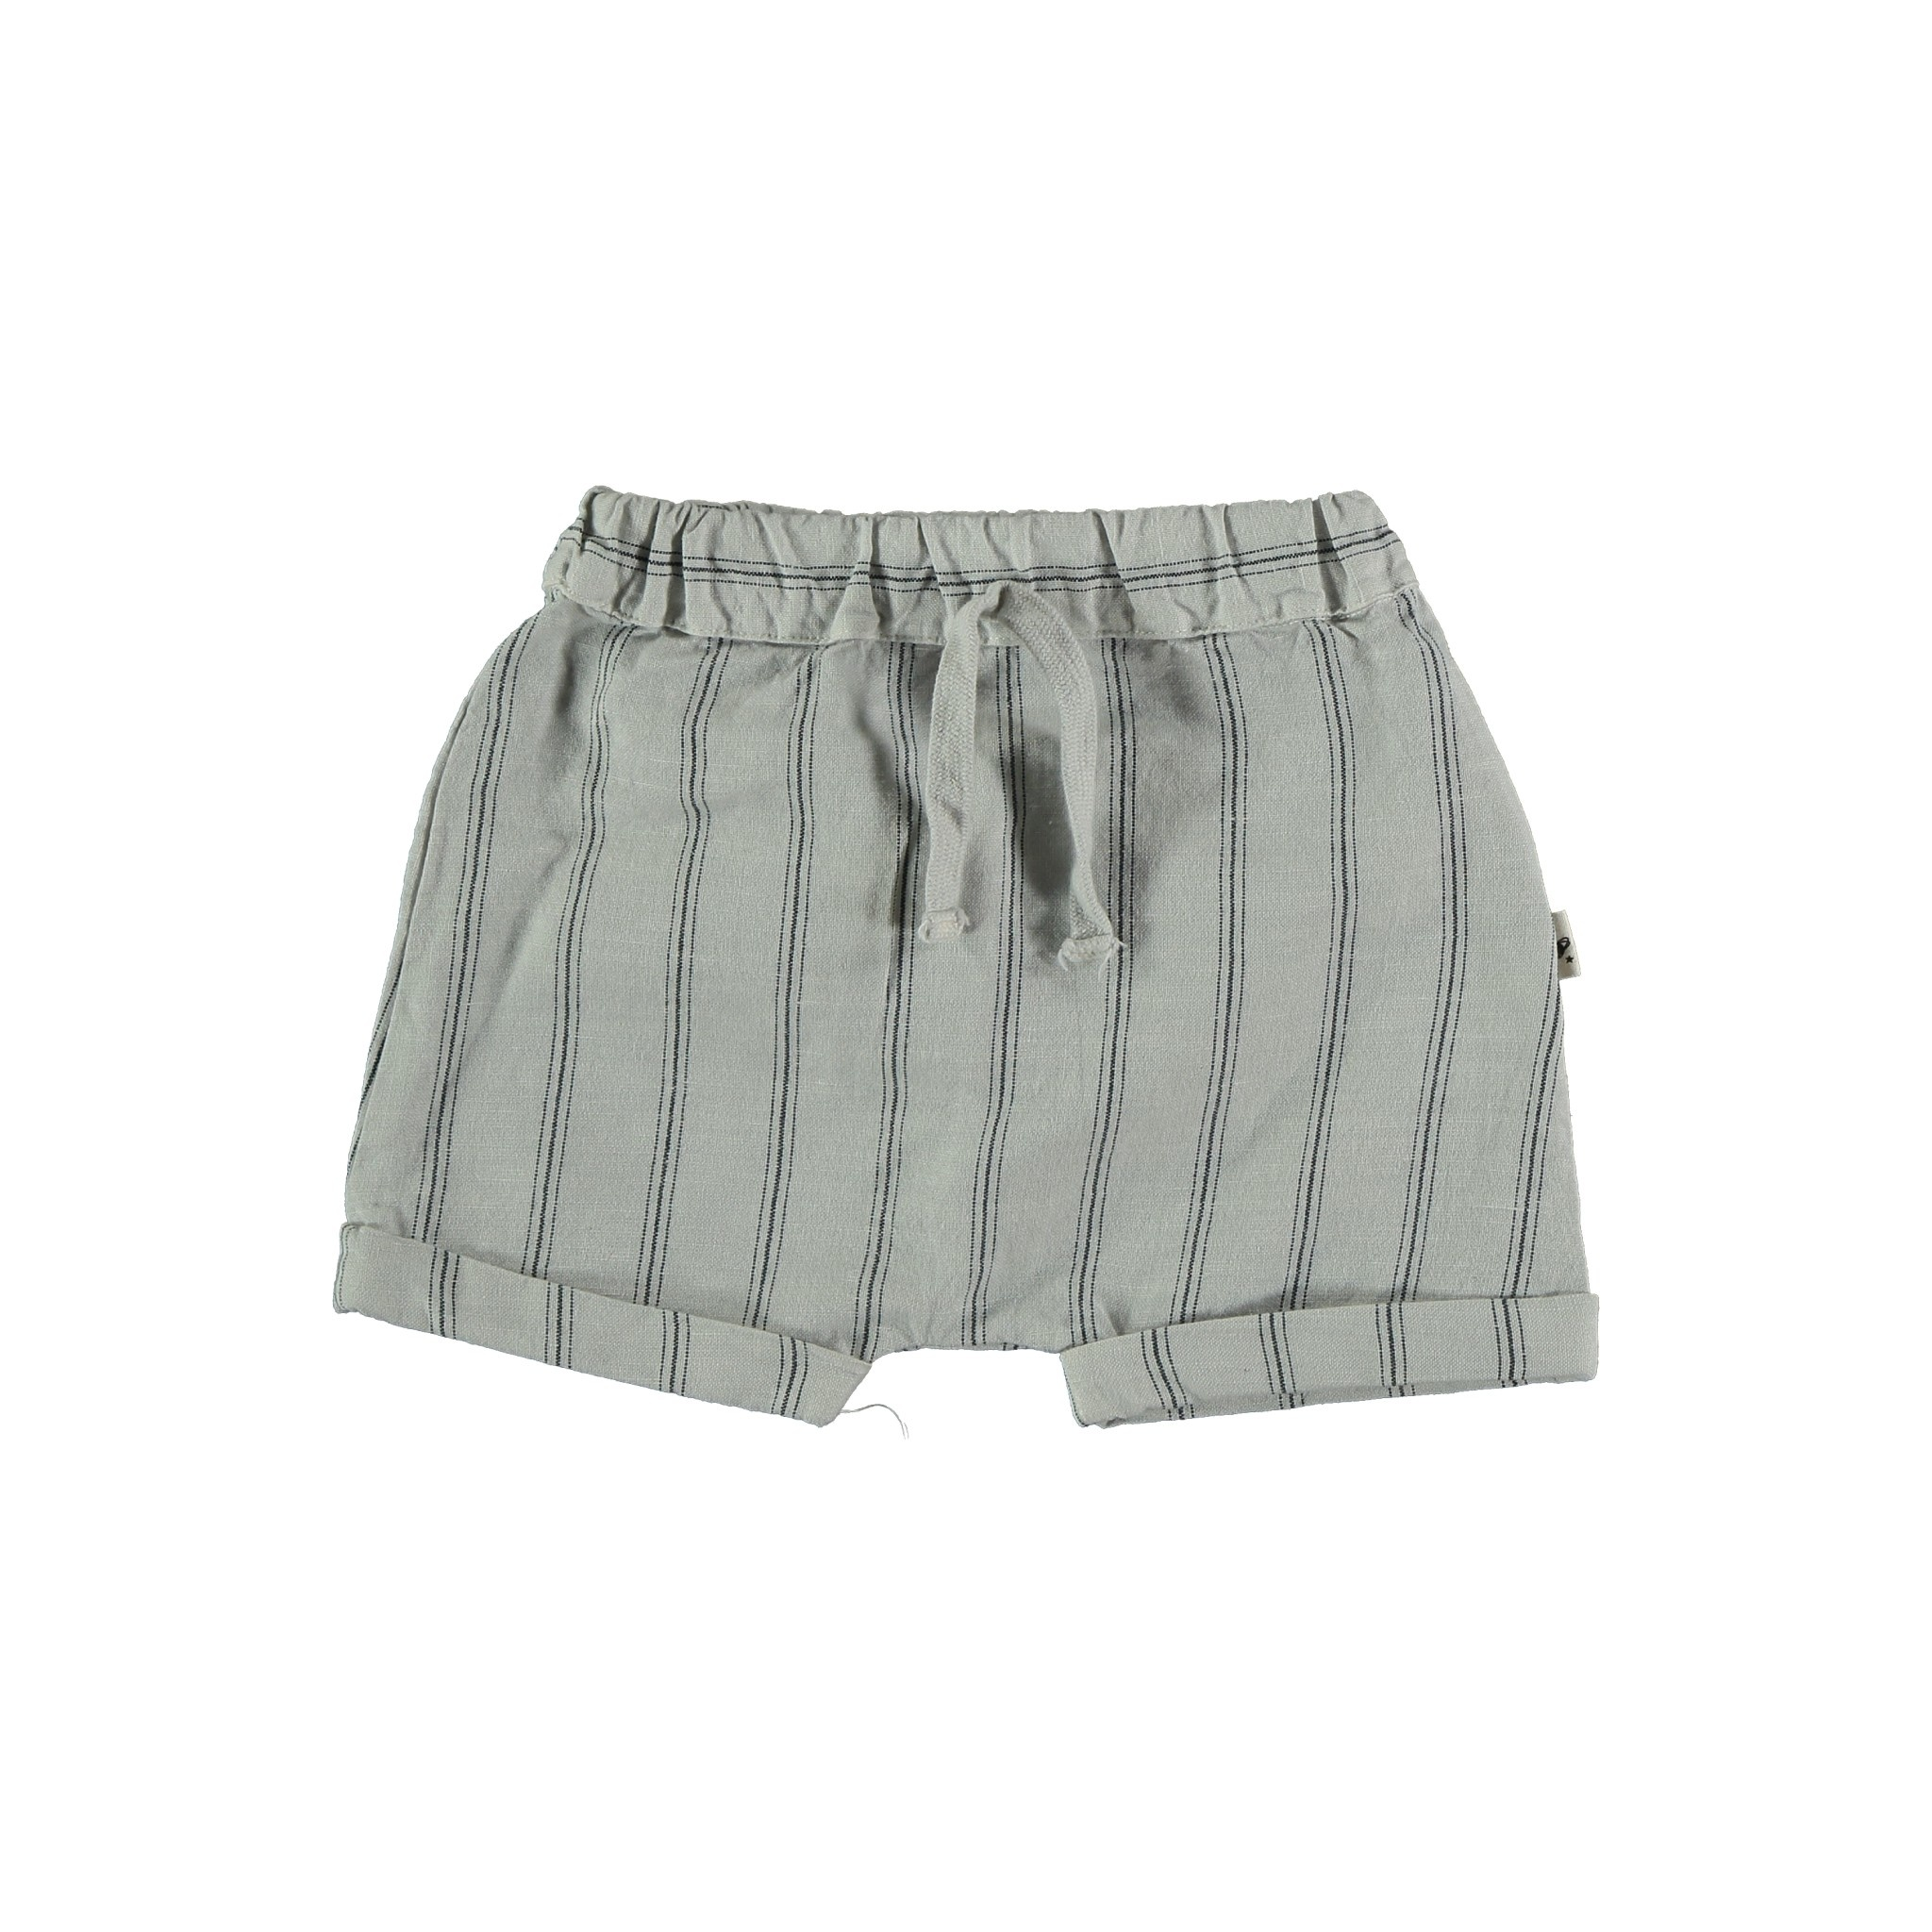 Kai striped shorts light grey-1